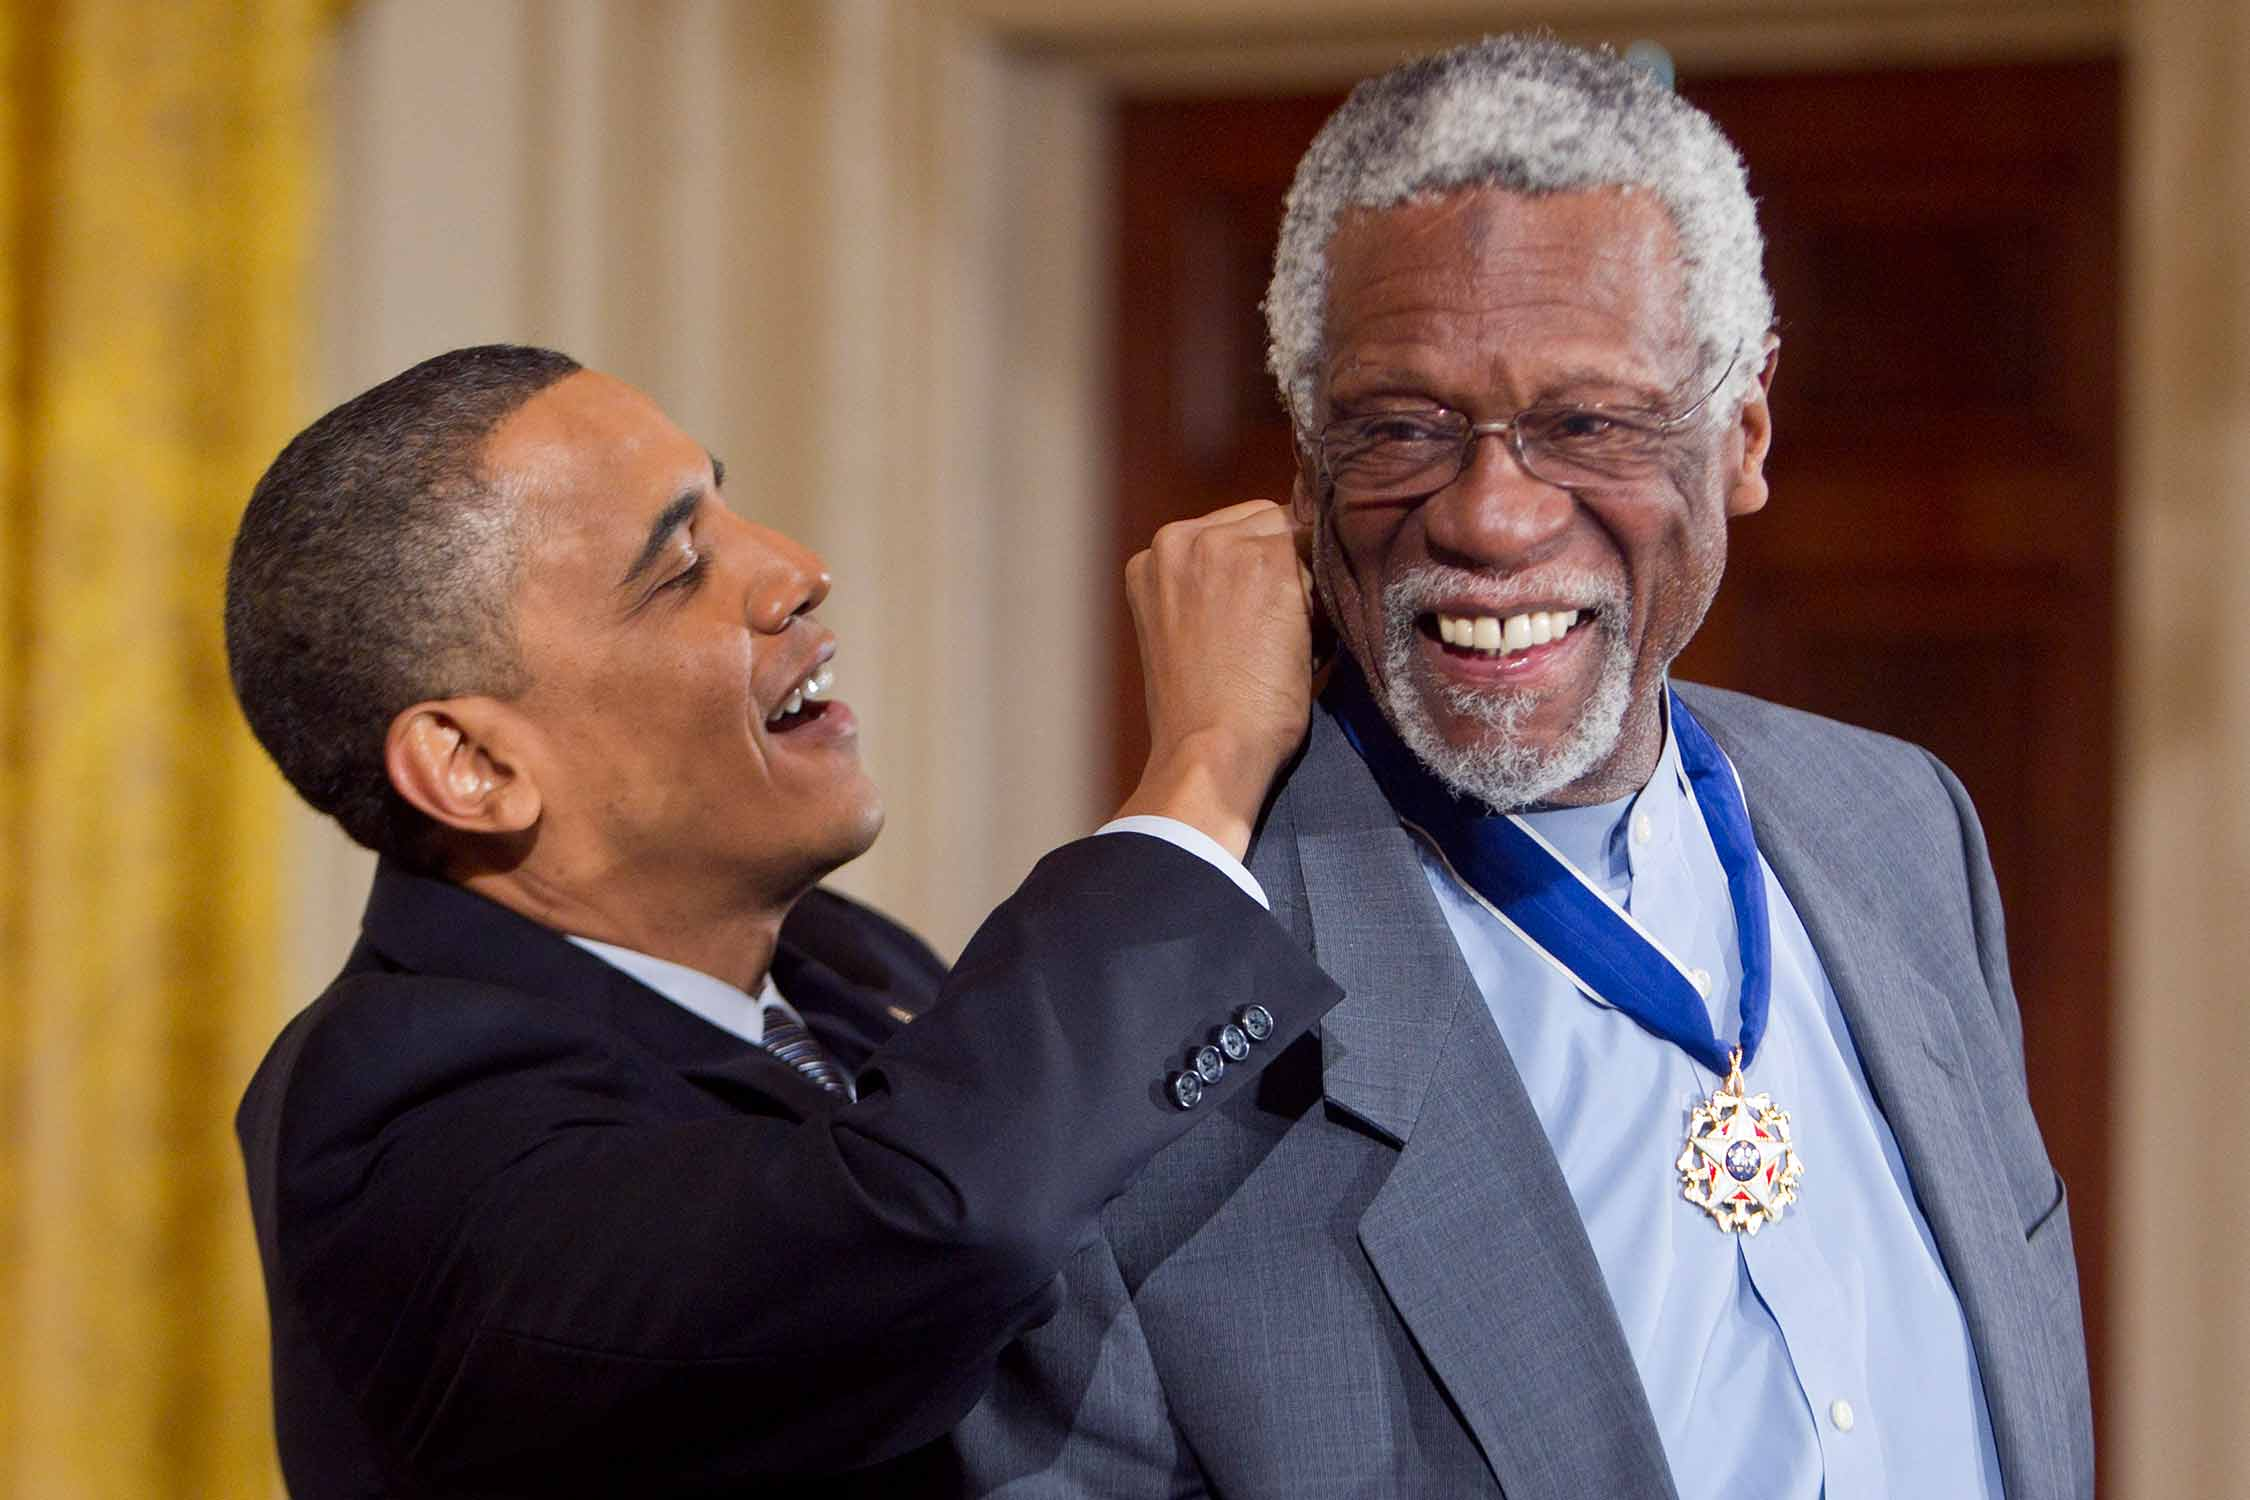 Barack Obama and Bill Russell